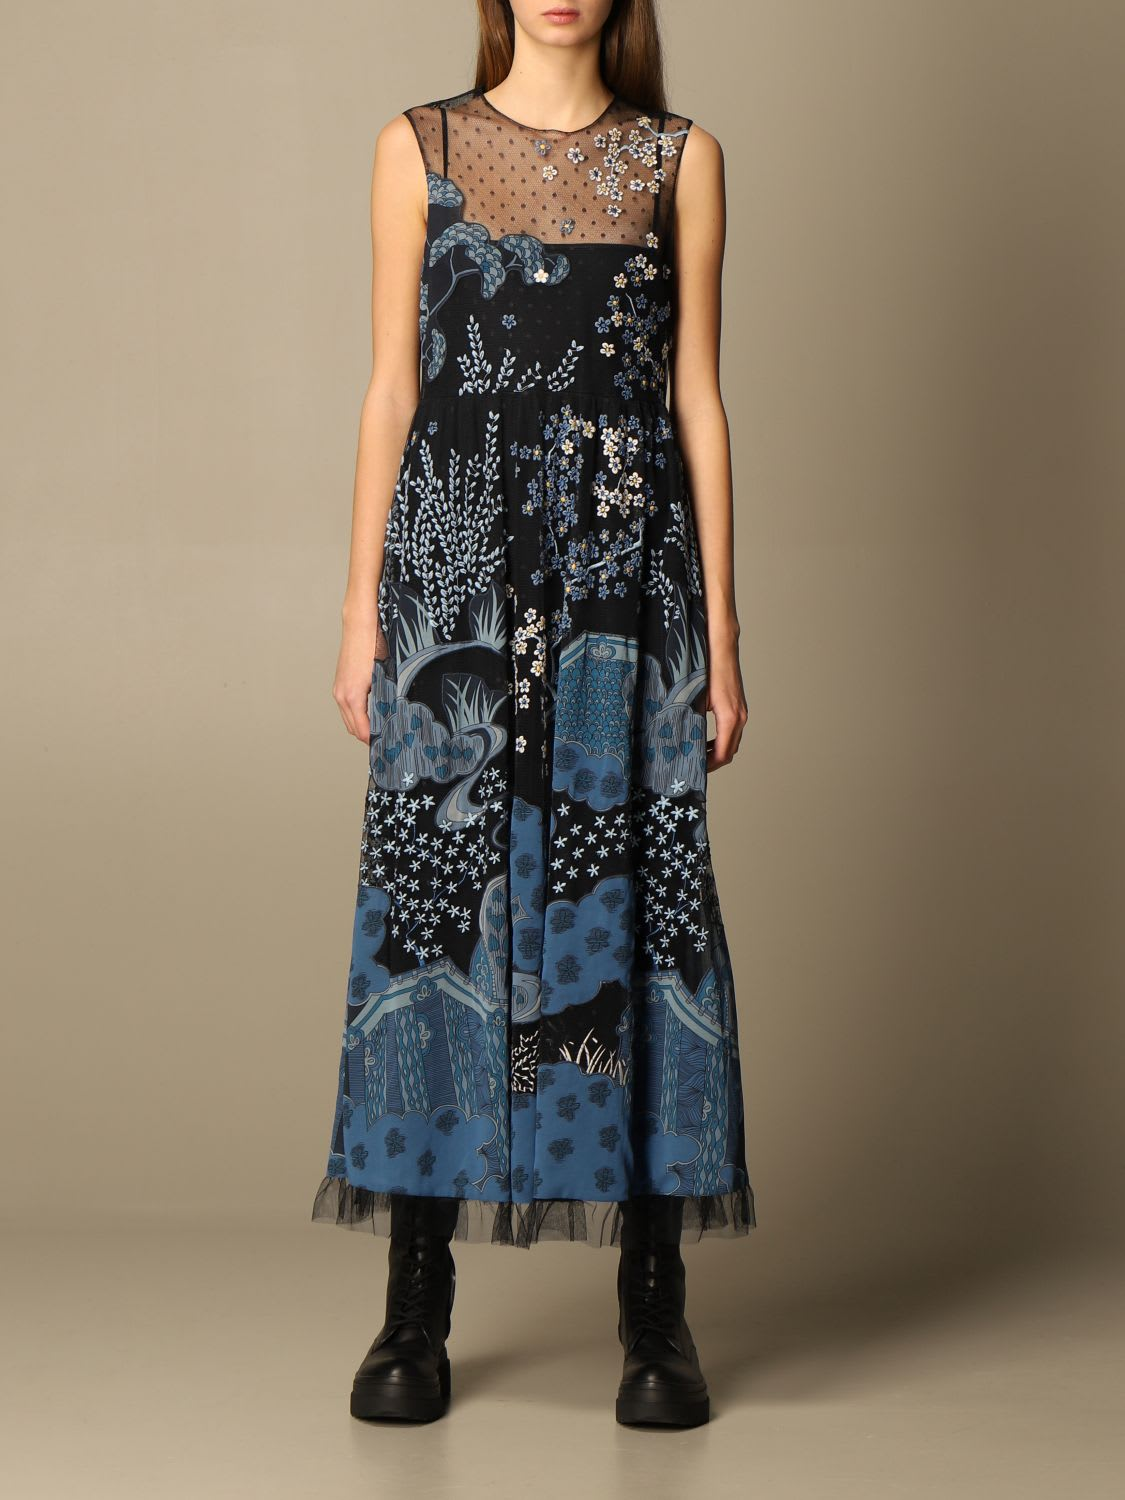 Red Valentino Dress Red Valentino Long Dress With Embroidery And Floral Patterns